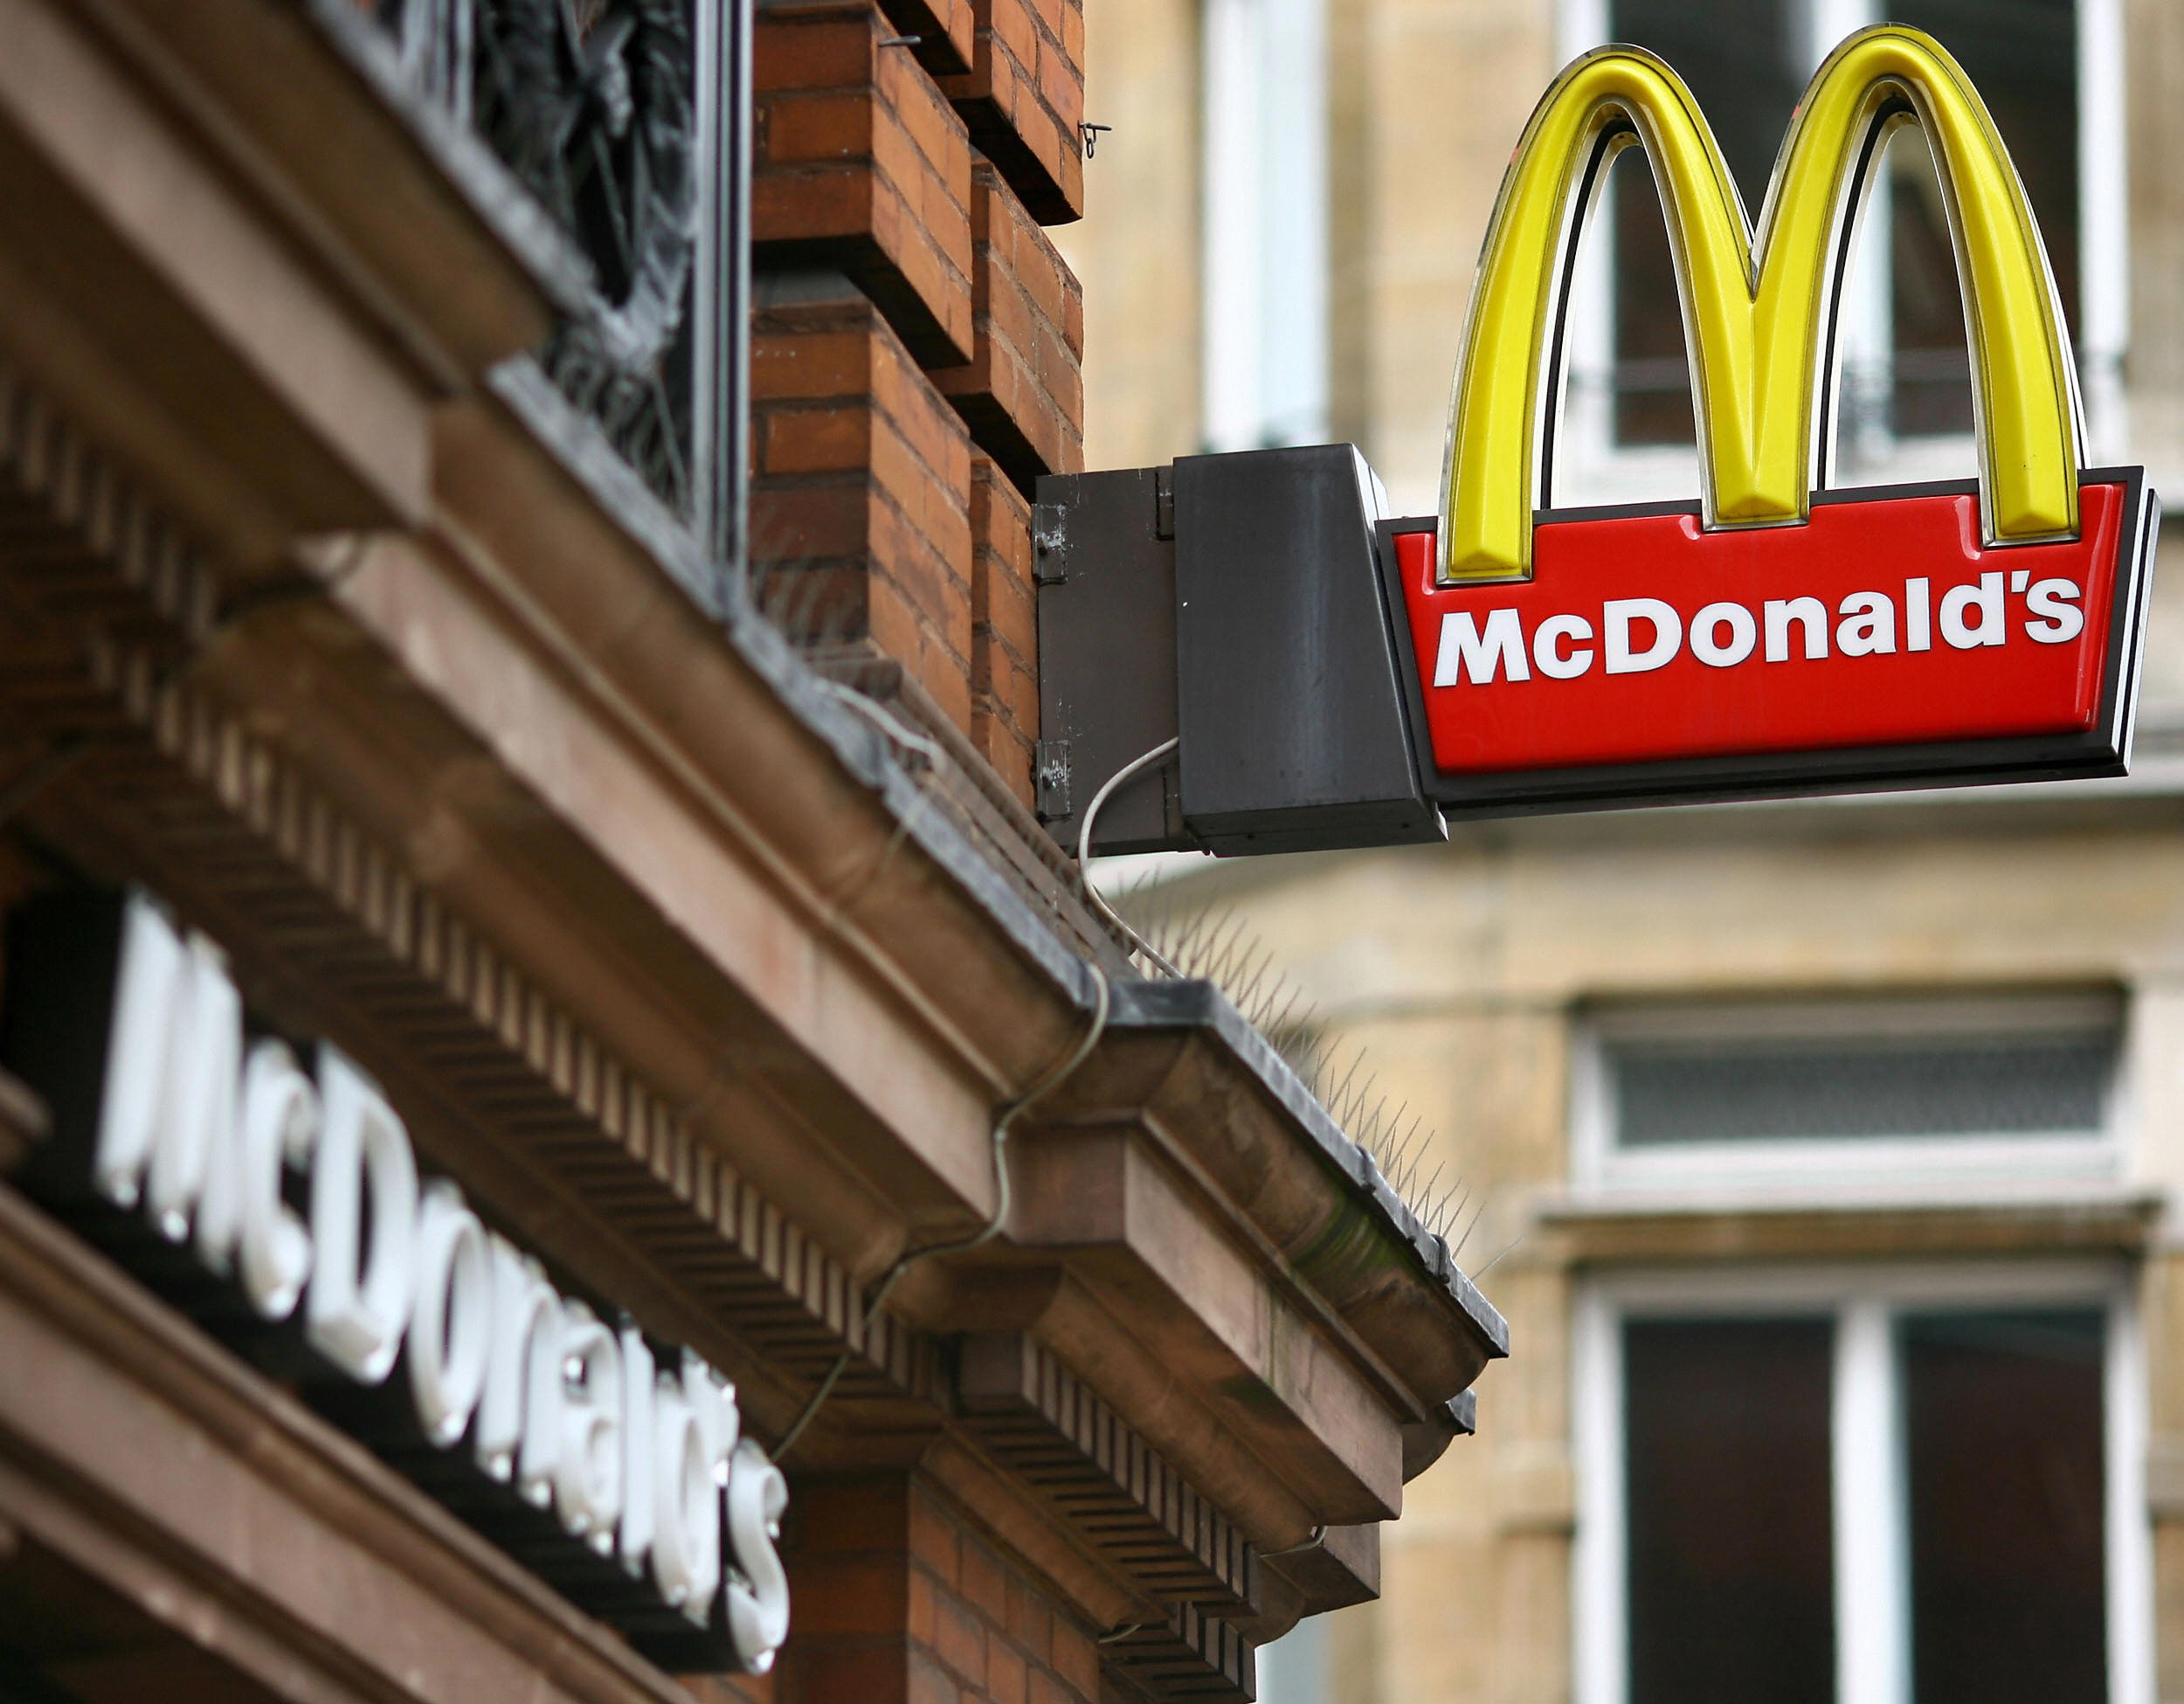 A McDonald's fast food store is pictured in central London on August 6, 2008. McDonald's launched a campaign on August 6 to recruit 4,000 staff in Britain to satisfy the demand from cash-strapped customers flocking to its restaurants as the credit crunch bites hard. As the rest of the British economy hits turbulent times, the fast food giant said it was serving an extra two million meals a month compared with this time last year. AFP PHOTO/Ben Stansall (Photo credit should read BEN STANSALL/AFP/Getty Images)